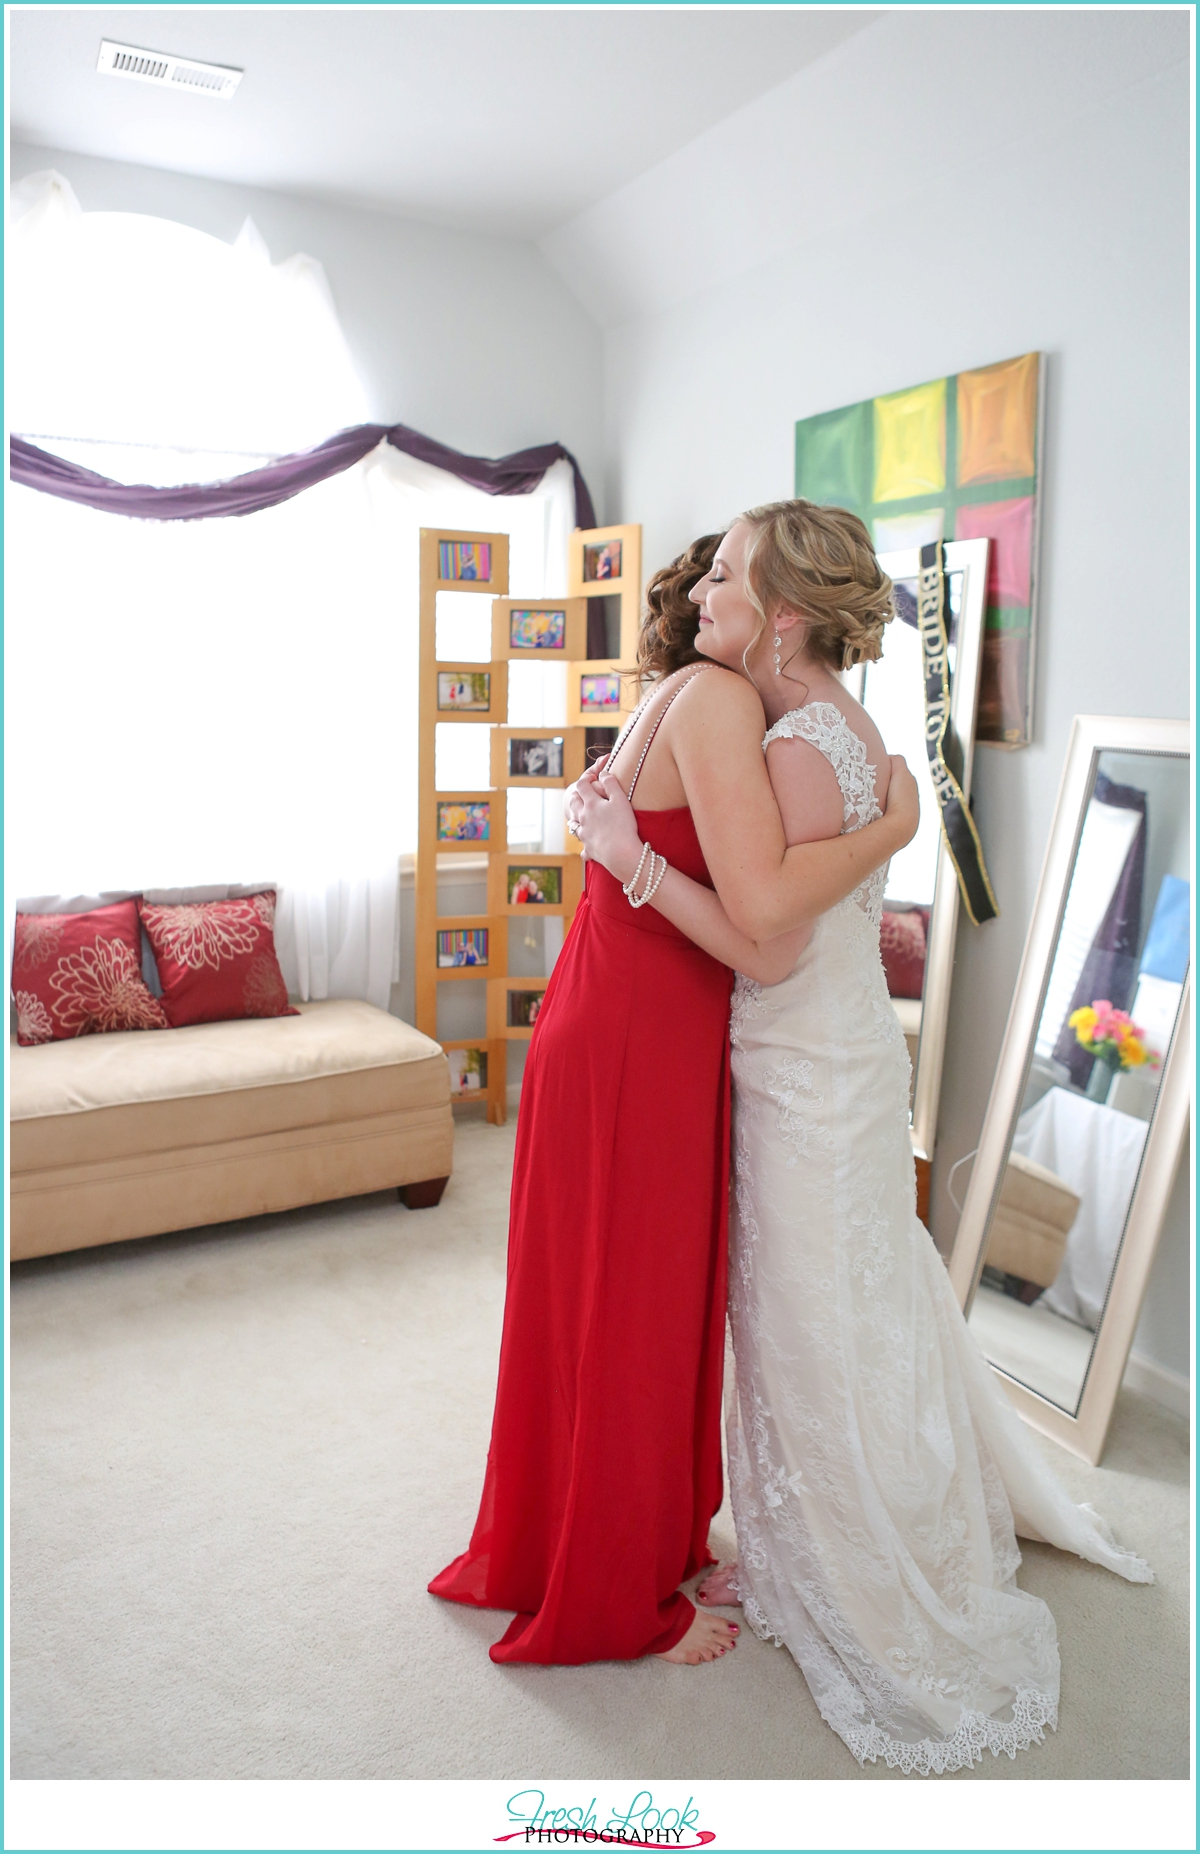 tender moment with the bride